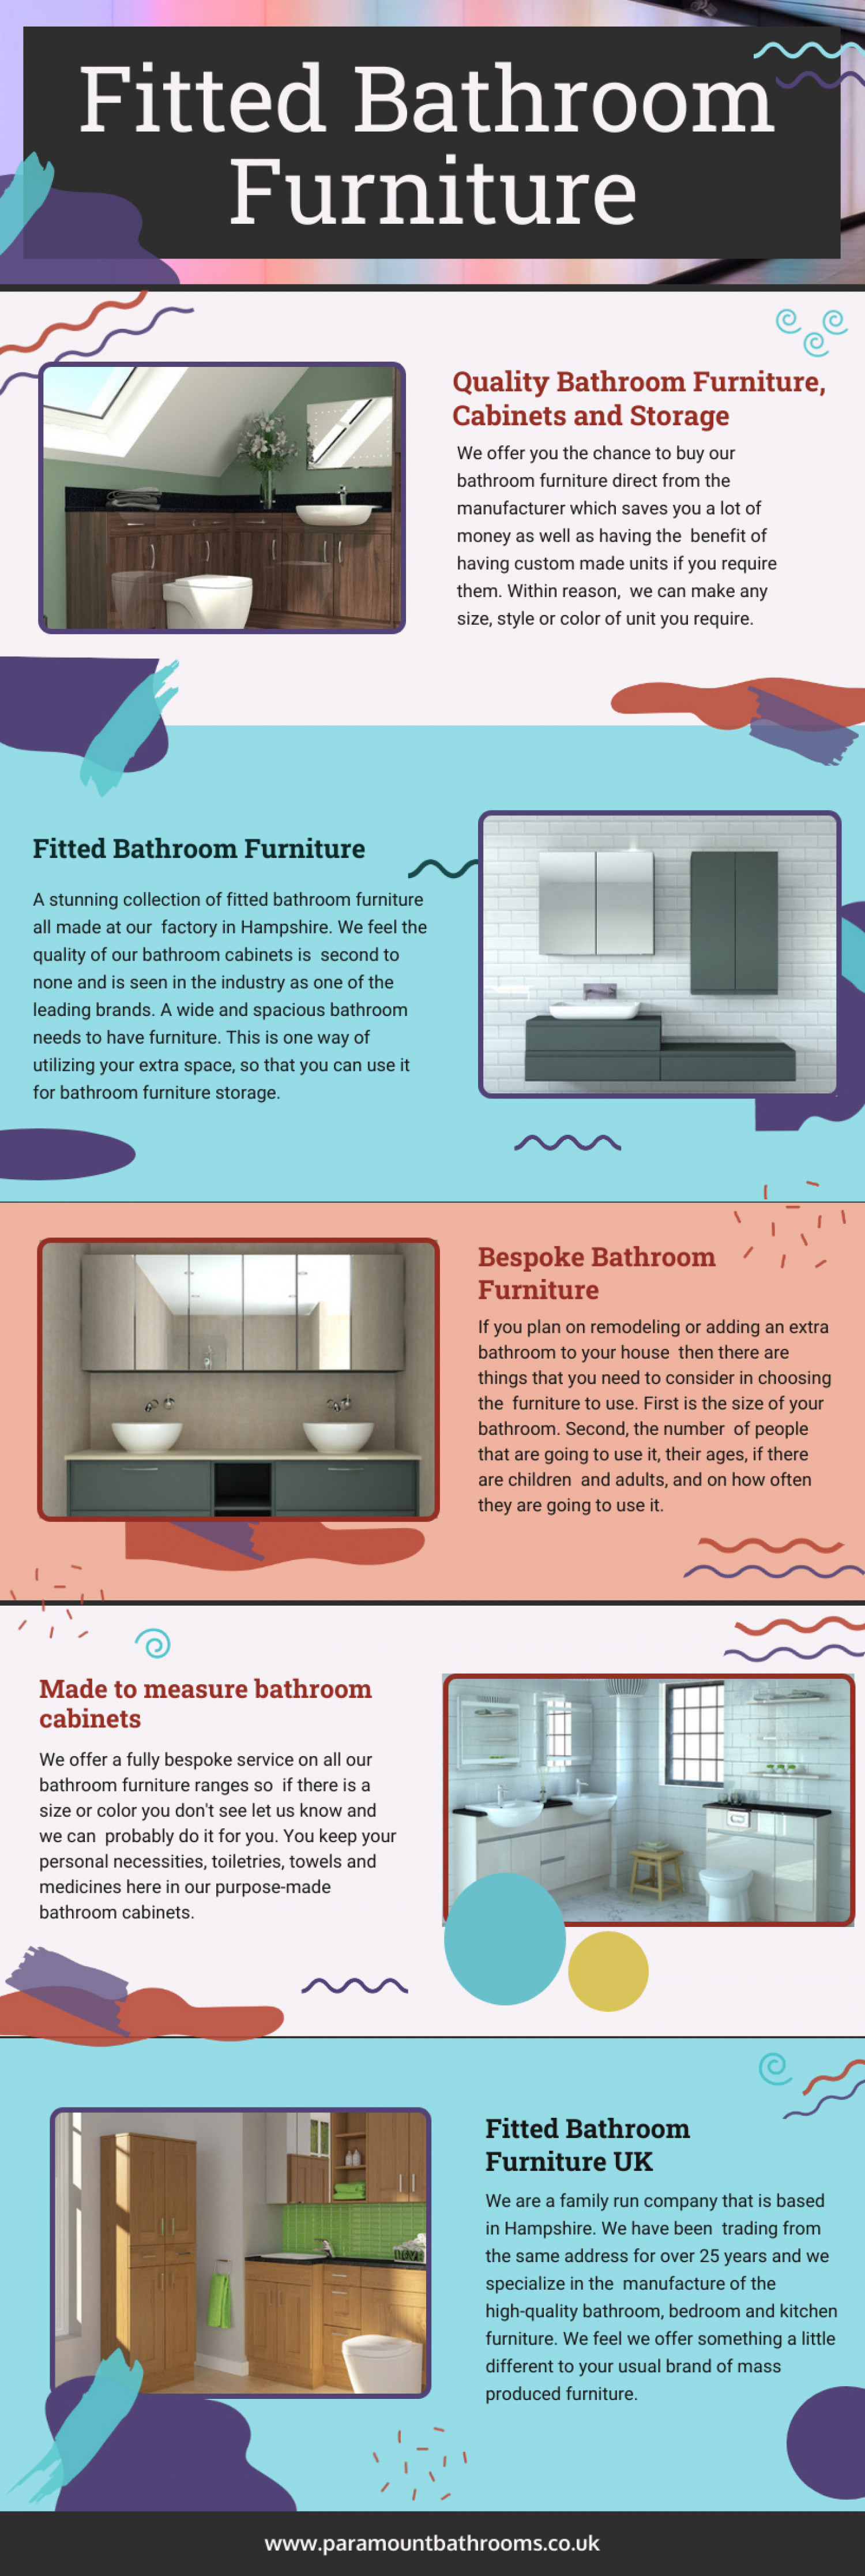 Fitted Bathroom Furniture Infographic